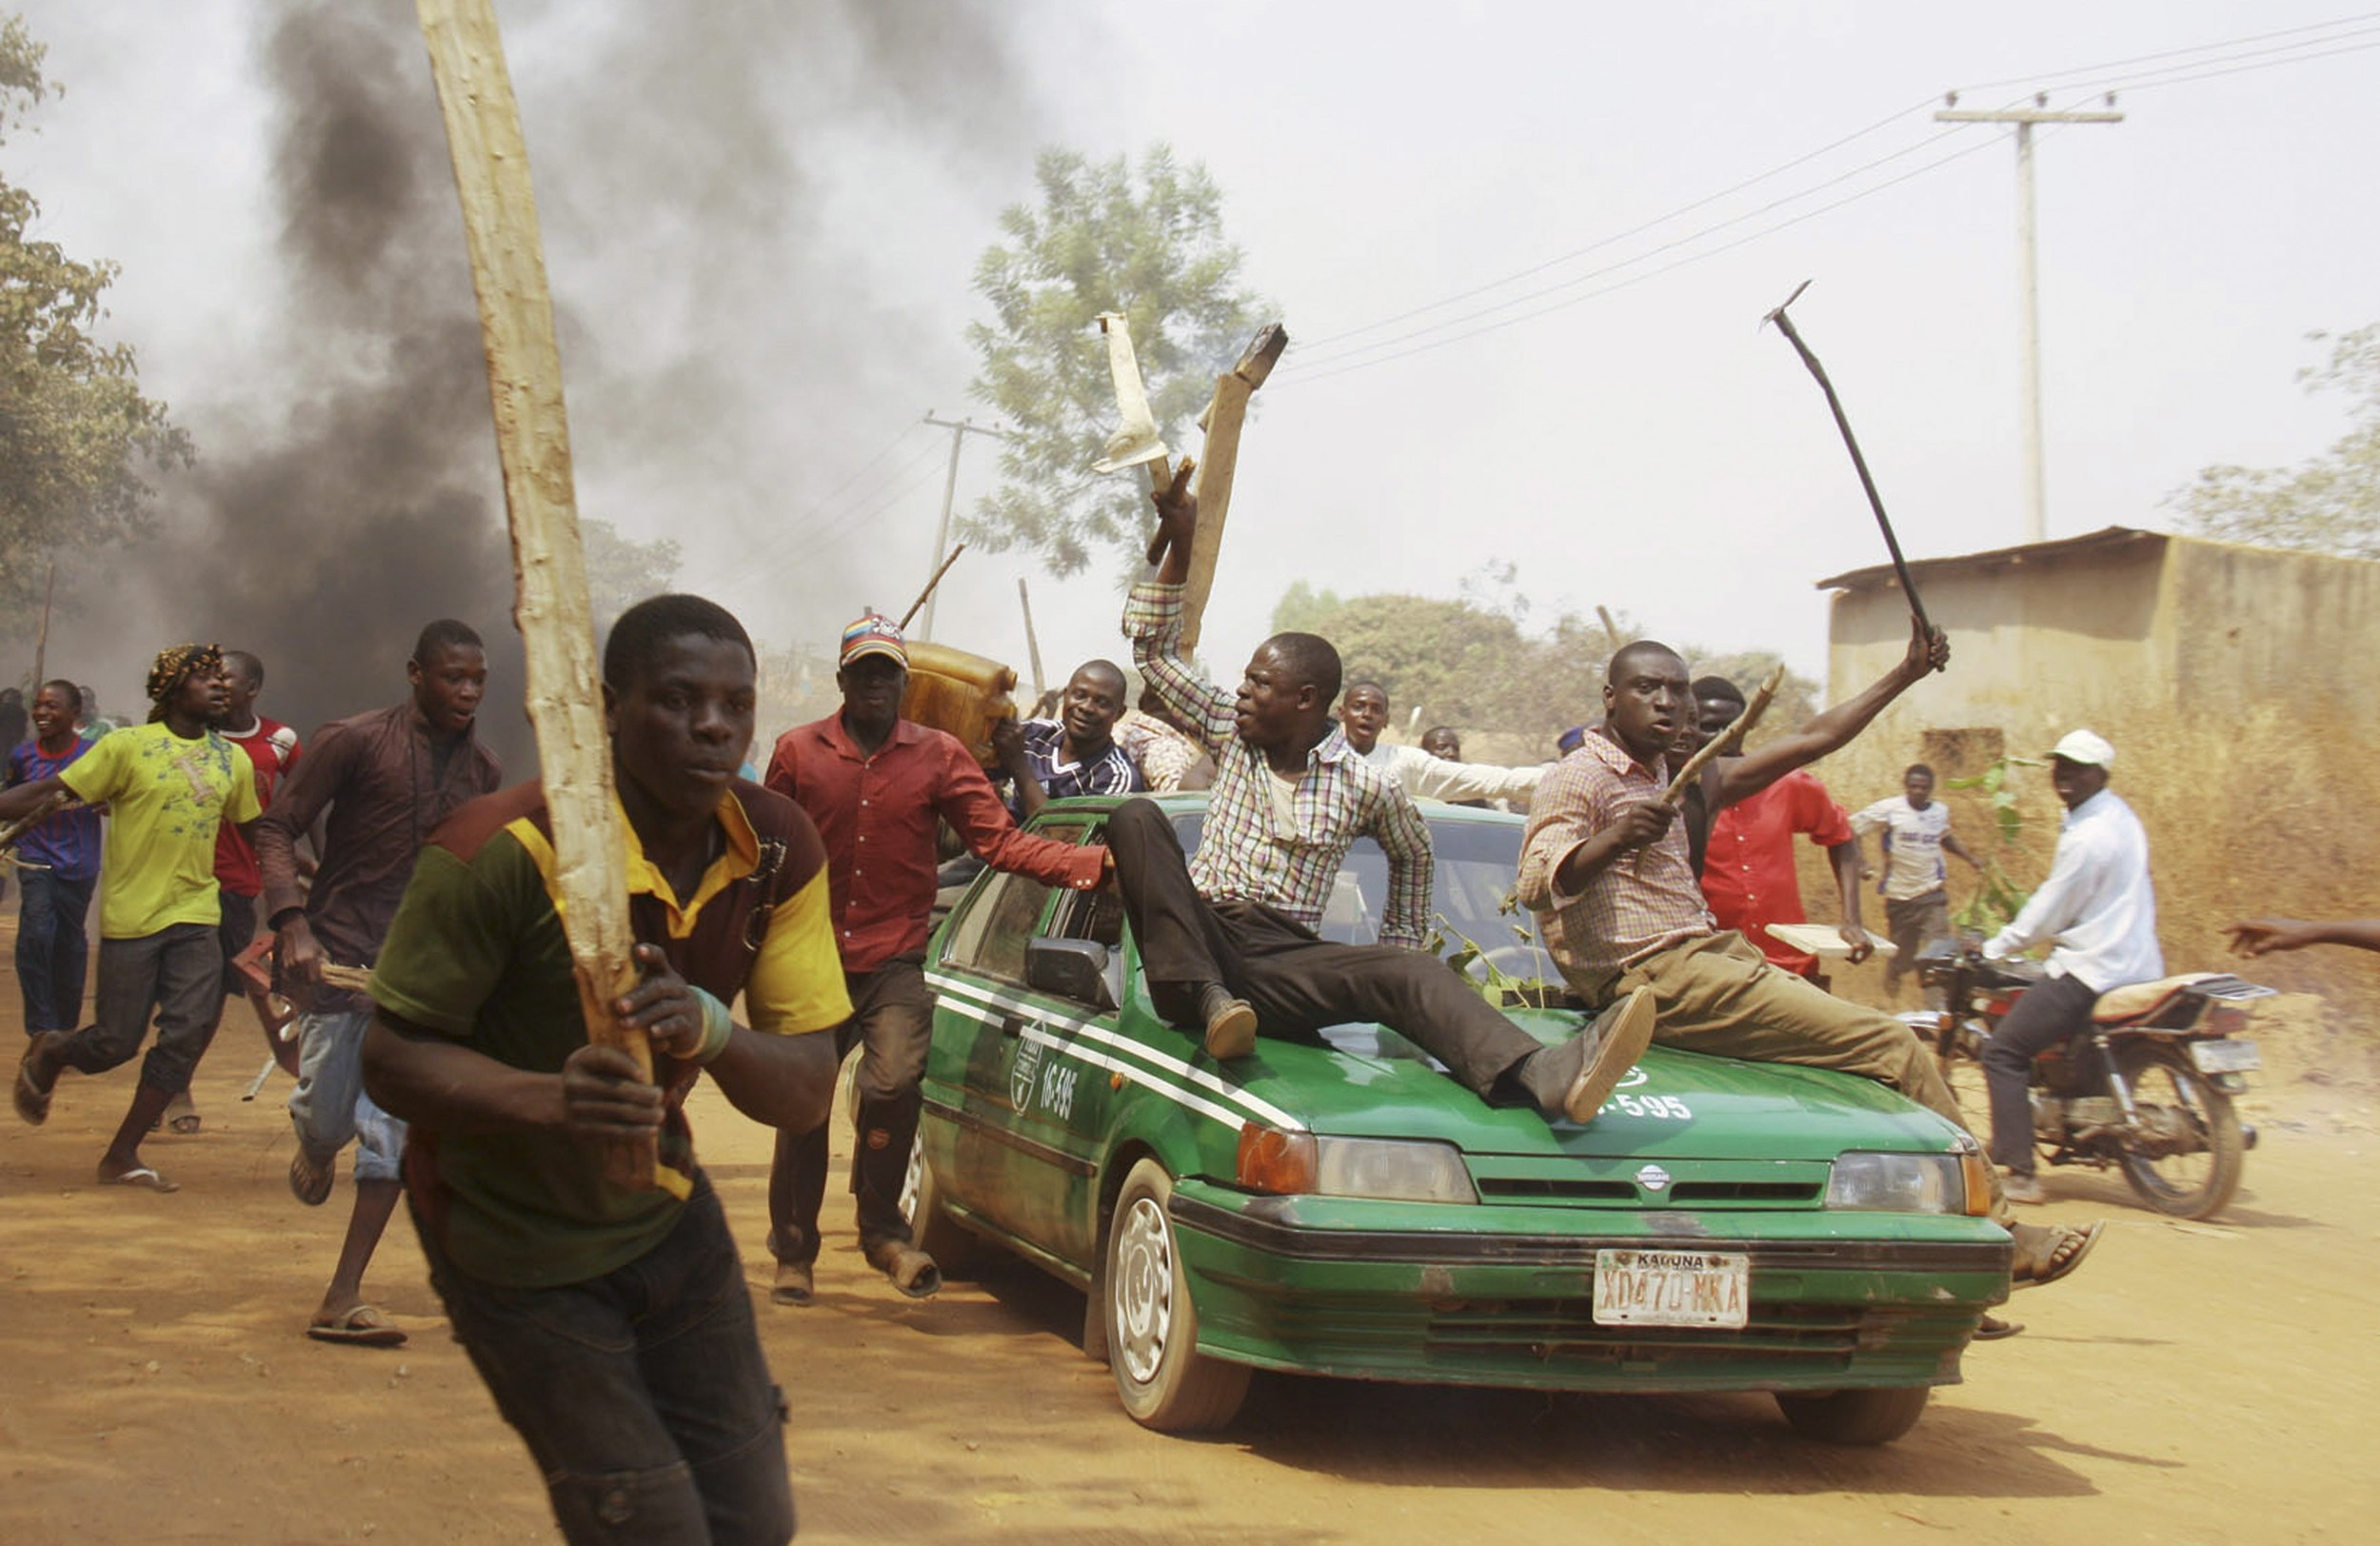 Stepping up operations in Nigeria - Photo courtesy of Reuters/Afolabi, Sotund